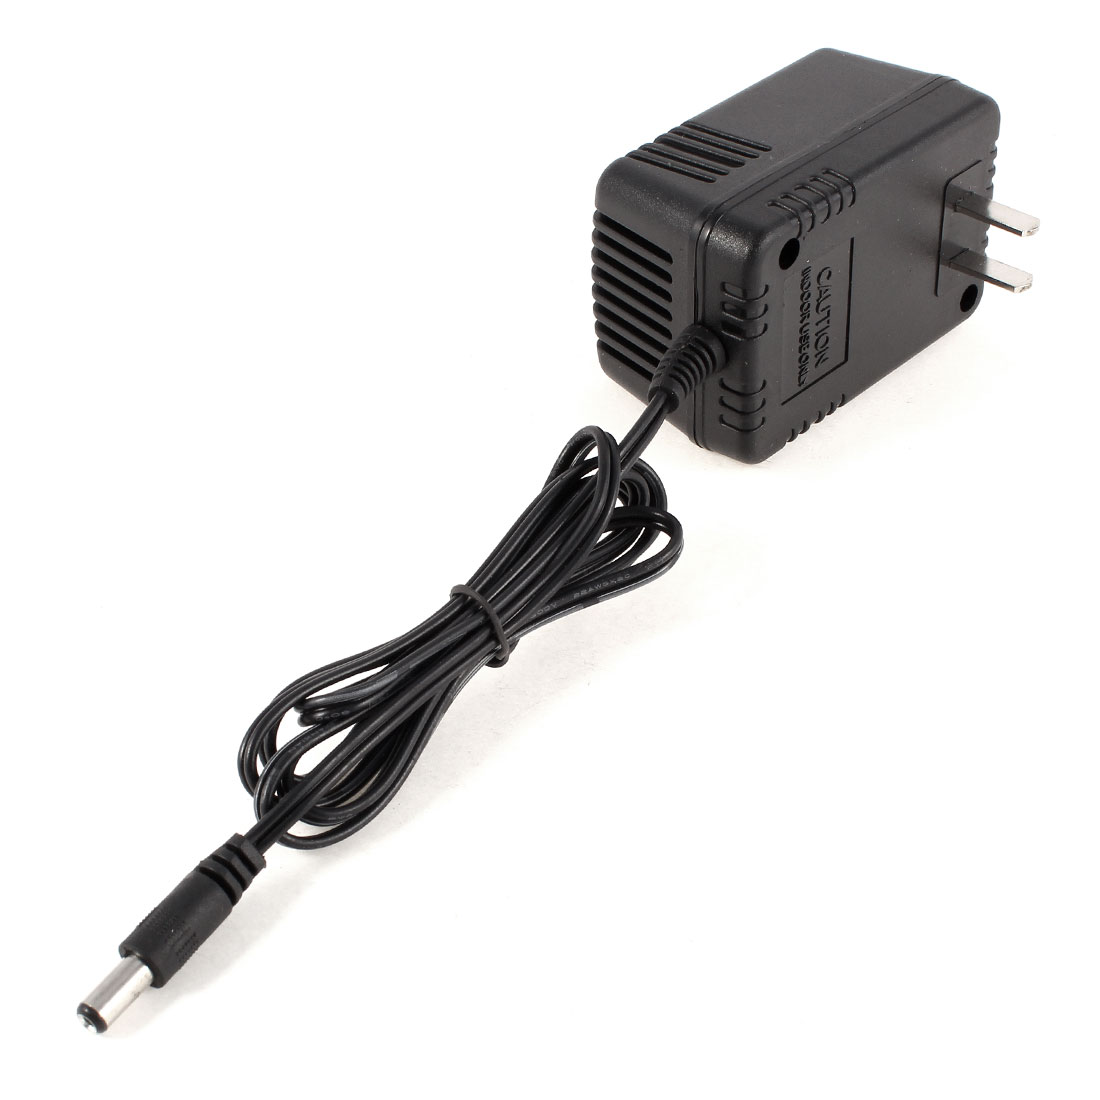 AC 220V AC/DC Adapter Power Supply Cord Charger 5.5 x 2.1mm US Plug